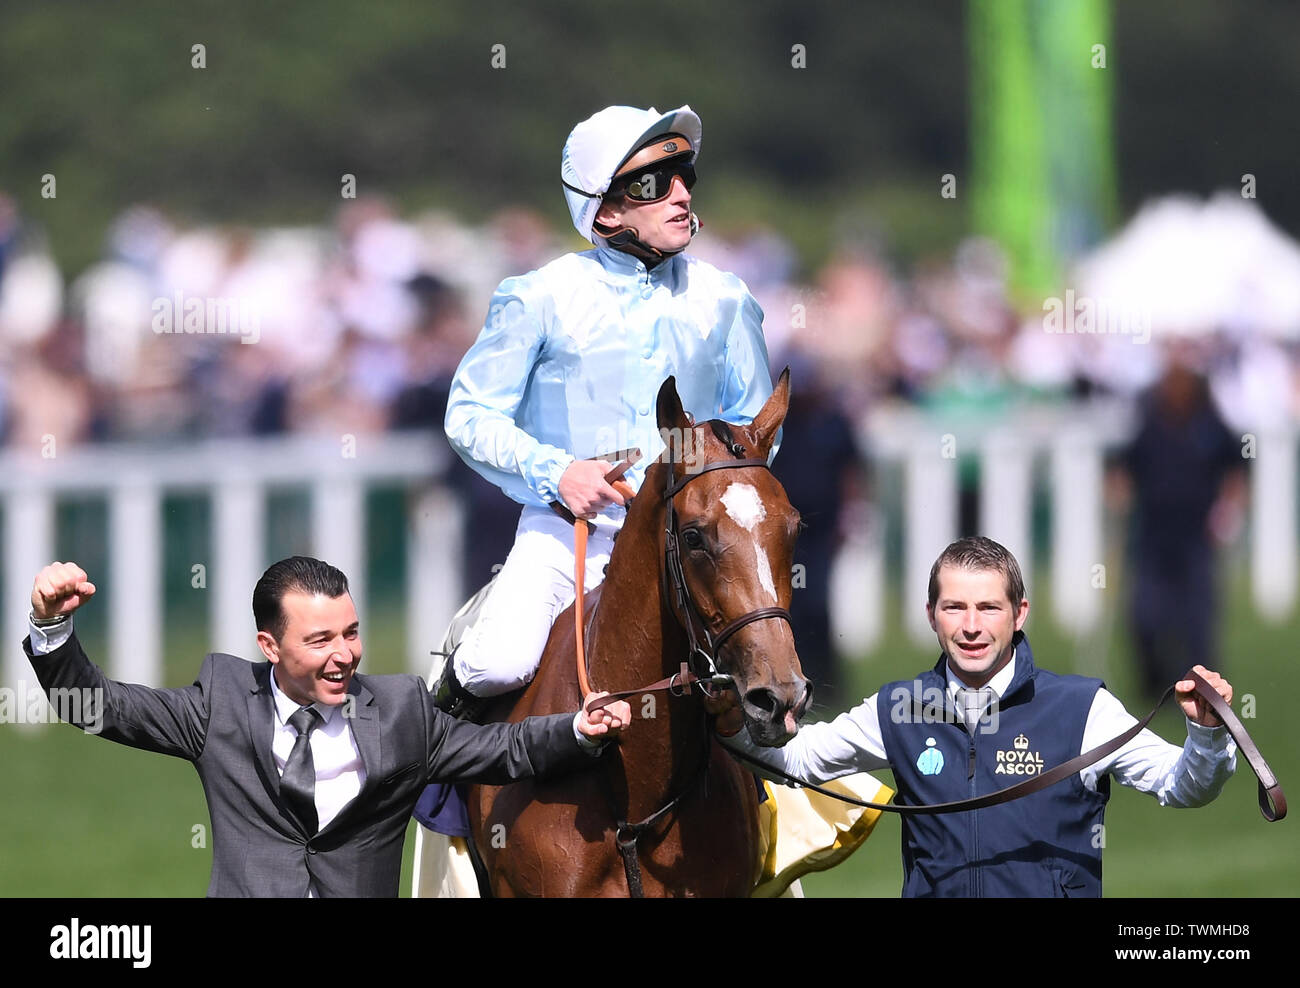 Ascot Racecourse, Windsor, UK. 21st June, 2019. Royal Ascot Horse racing; Race 4; Coronation Stakes; Watch Me Ridden By Pierre Charles Boudot Trained By F H Graffard wins The Coronation Stakes and Pierre Charles Boudot celebrates Credit: Action Plus Sports/Alamy Live News Stock Photo